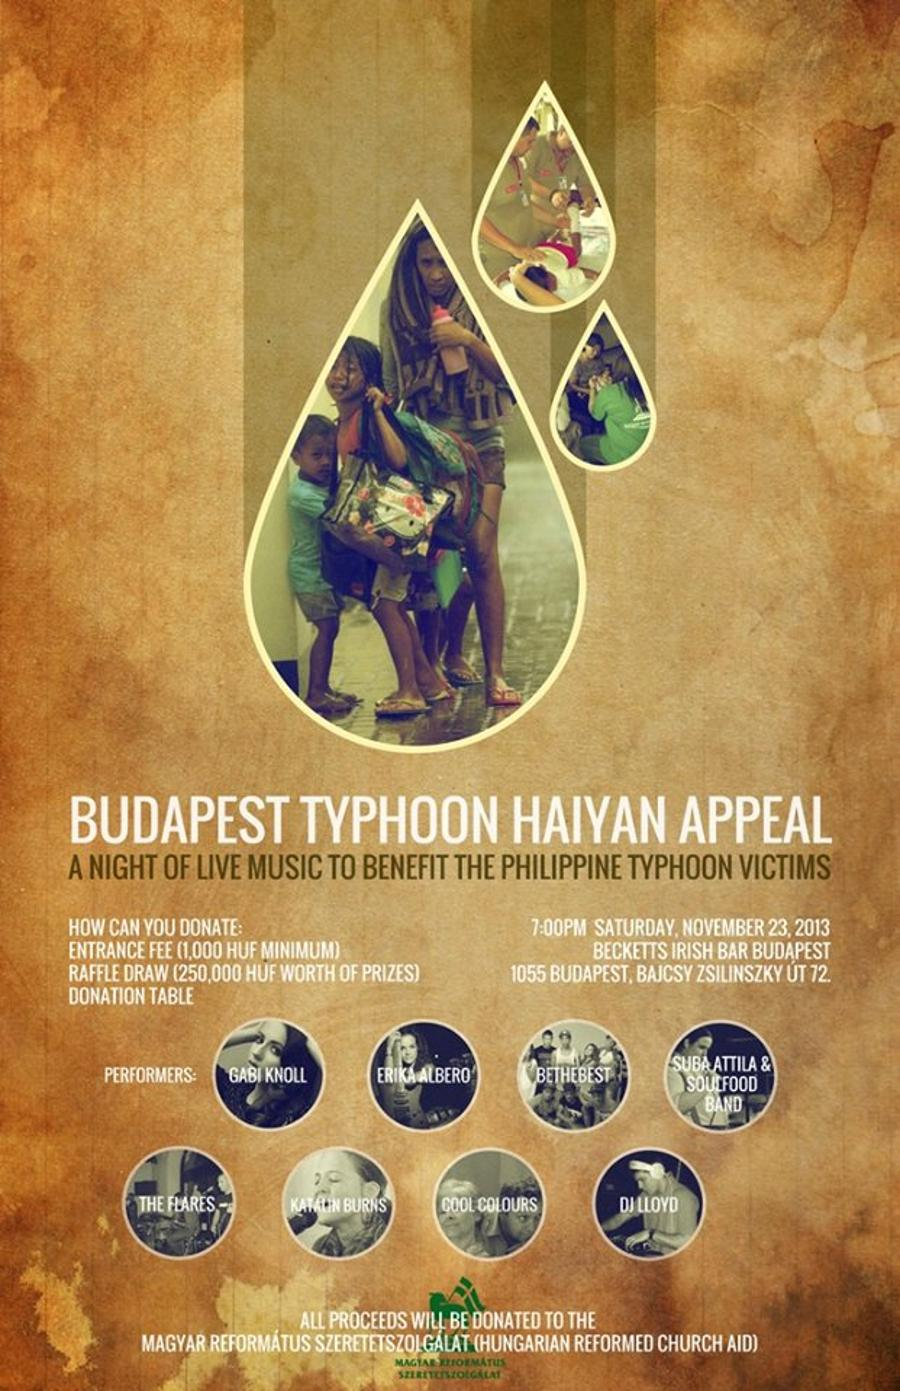 Budapest Typhoon Haiyan Appeal Concert, Becketts, On Saturday 7pm